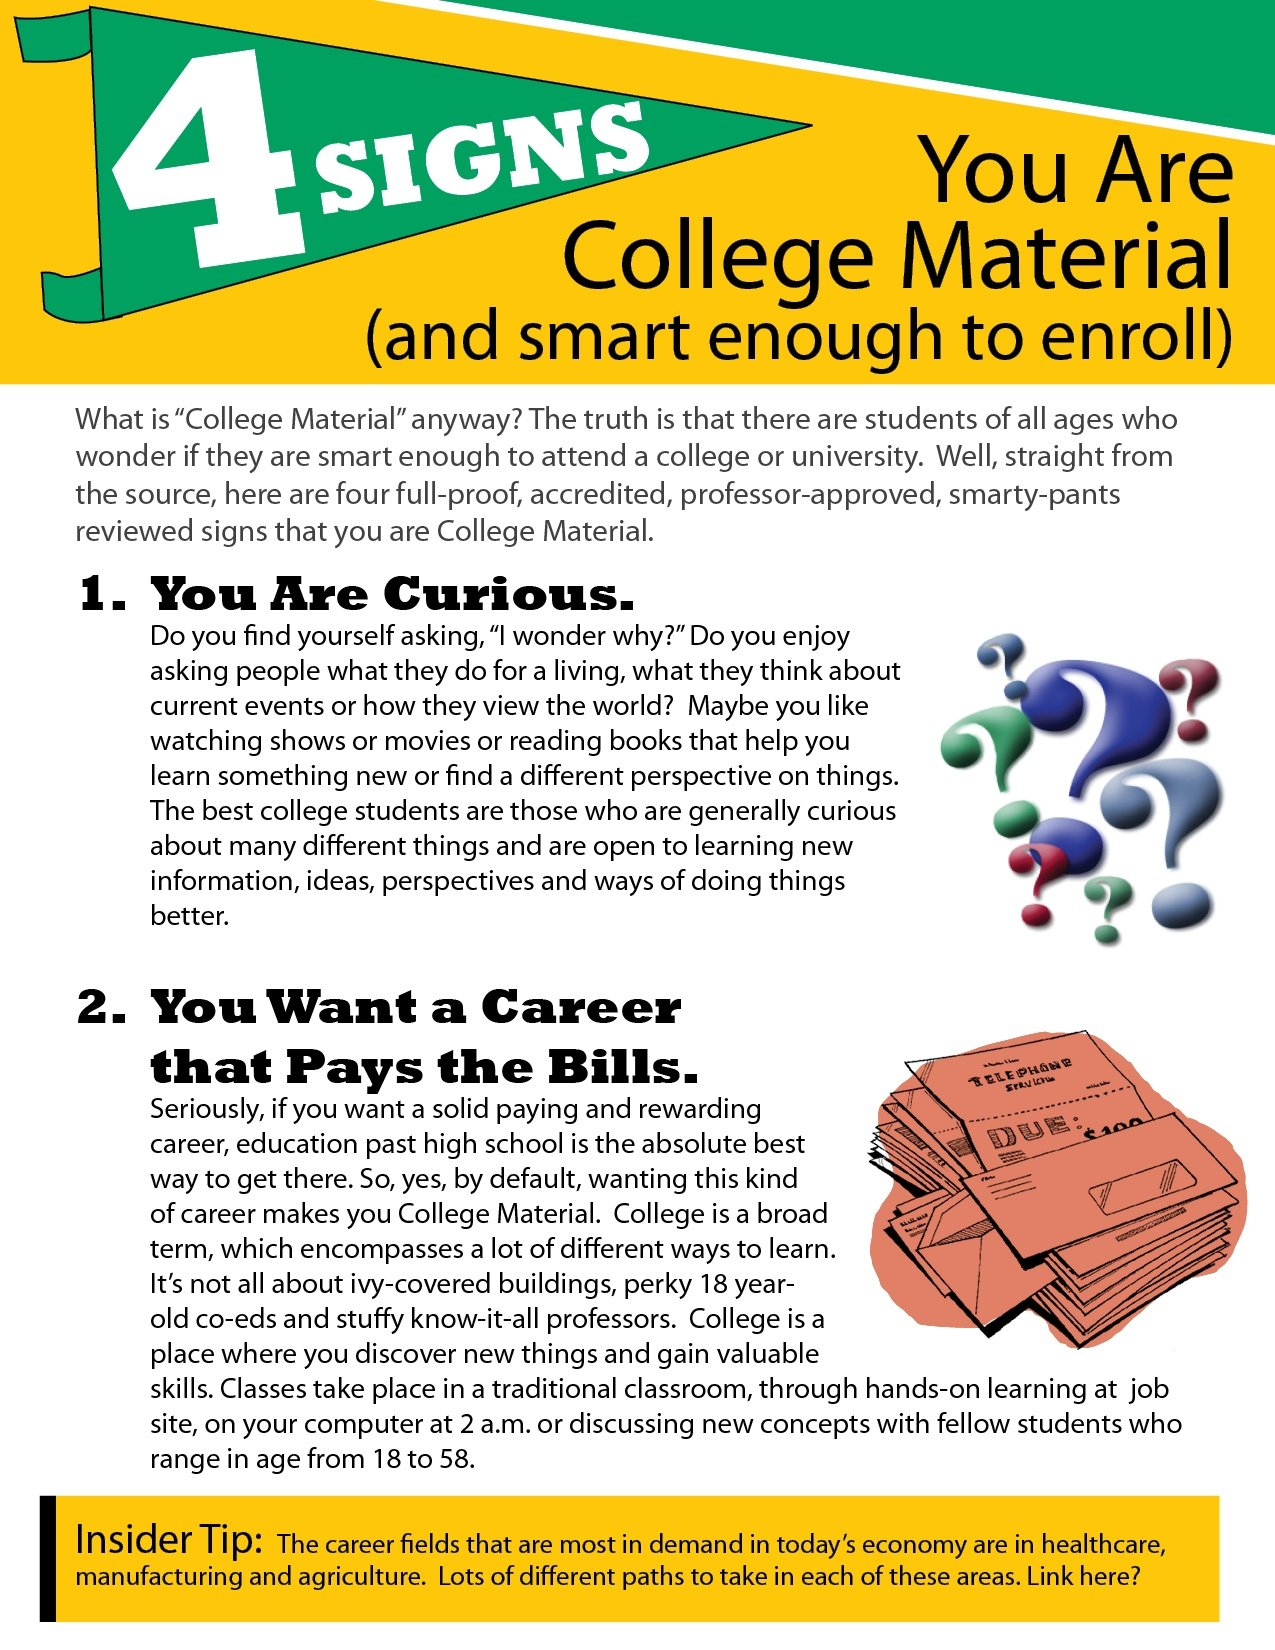 4-signs-you-are-college-material-3.jpg